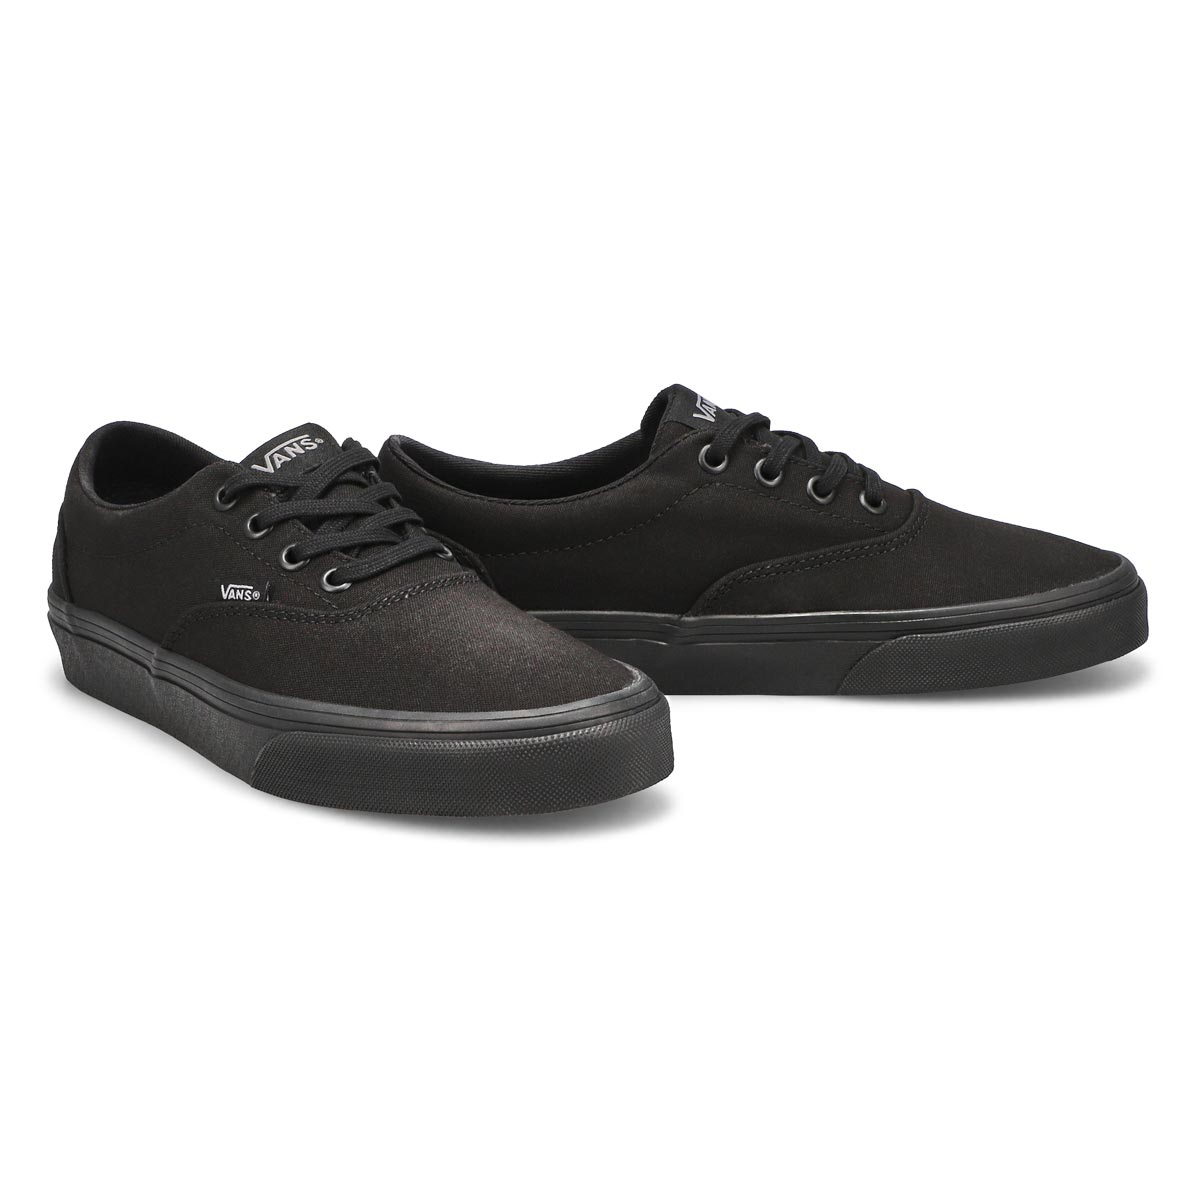 Lds Doheny blk/blk lace up snkr